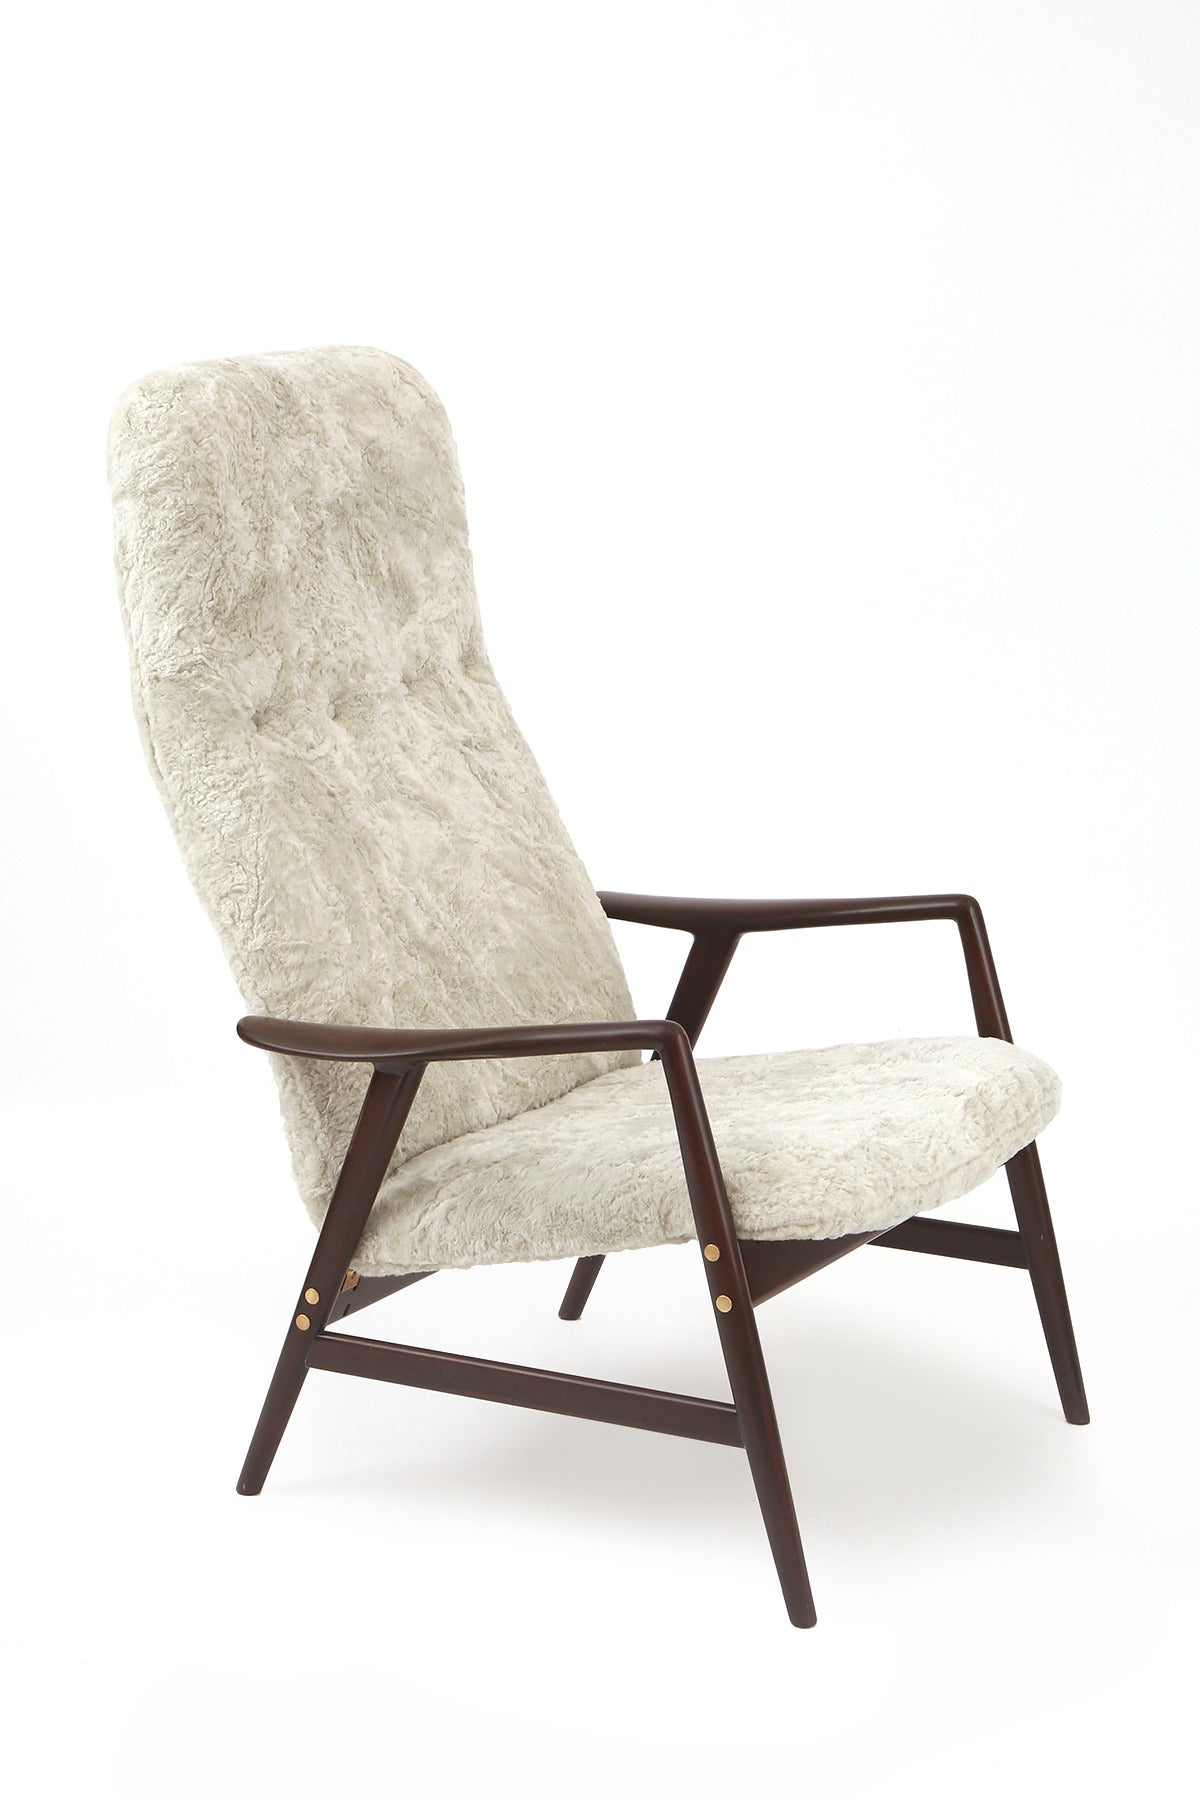 Sculptural Teak Brass And Upholstered Danish Lounge Chair And Ottoman At 1stdibs